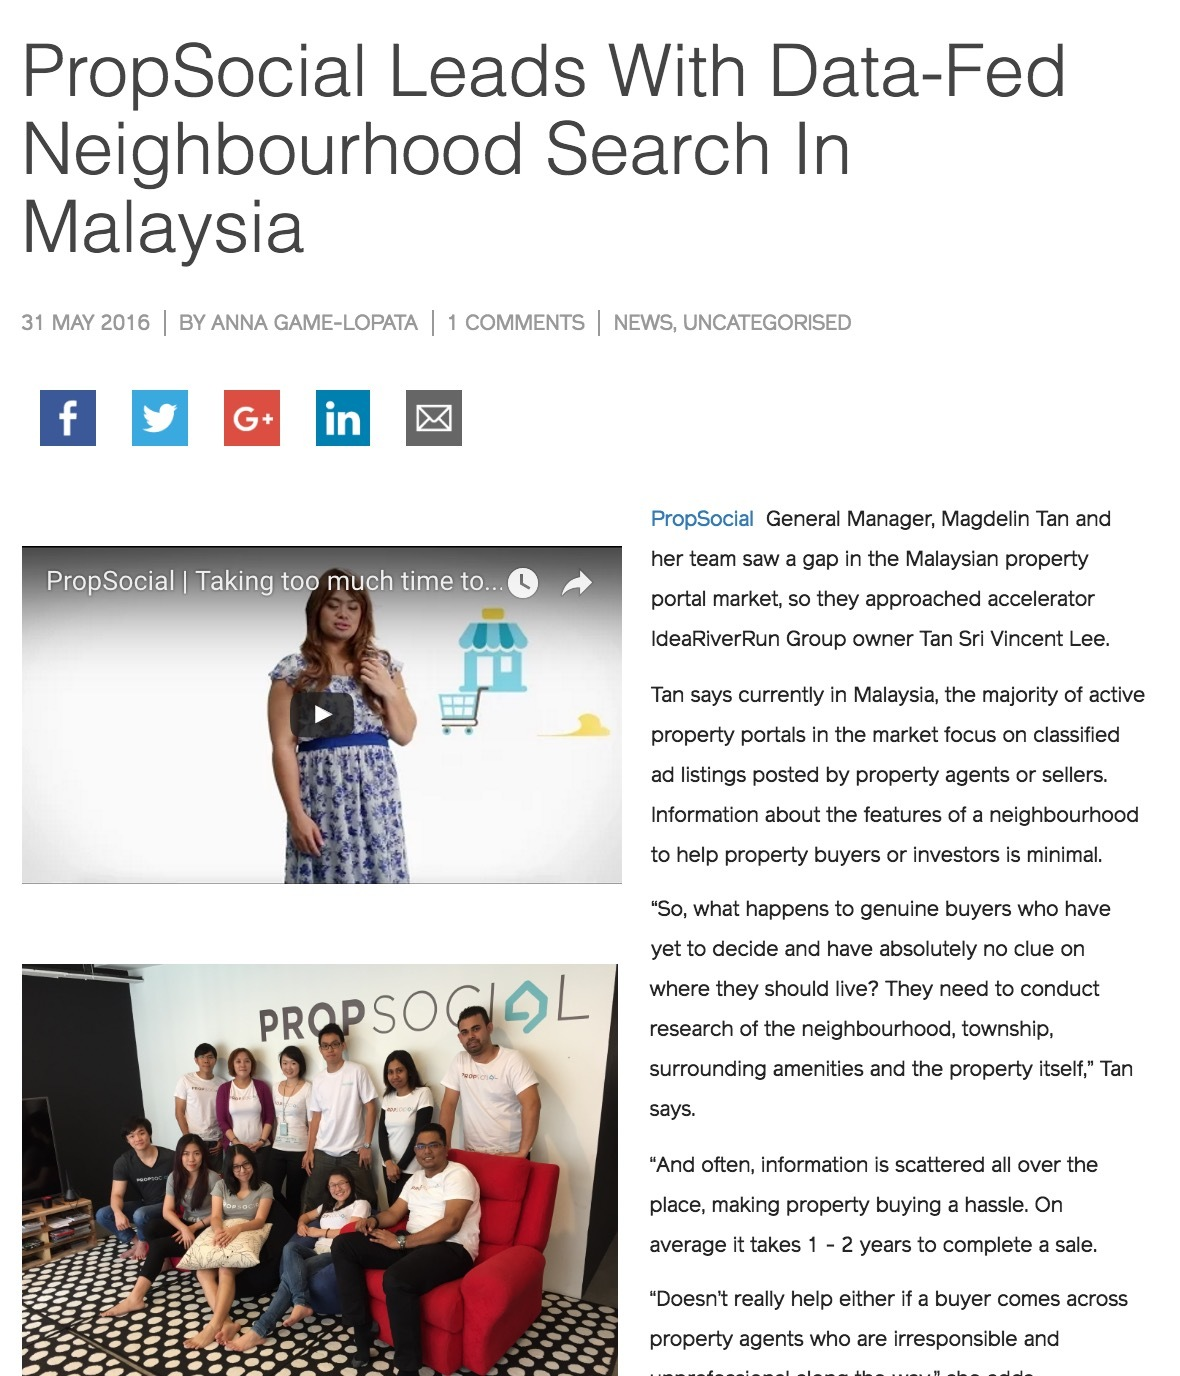 Propsocial leads with data fed neighbourhood search in malaysia